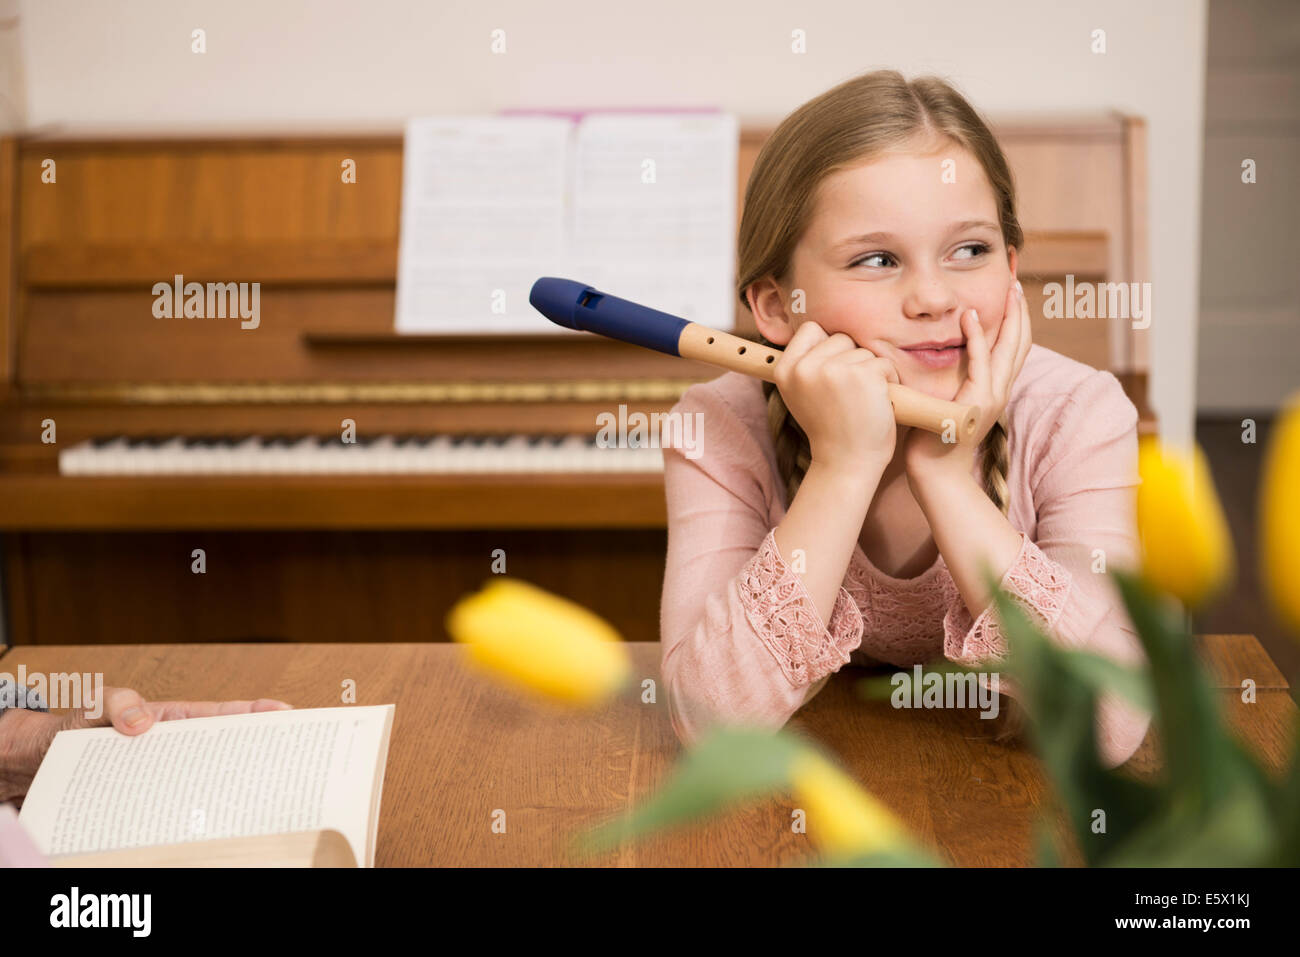 Bored distracted girl with recorder instrument in dining room - Stock Image